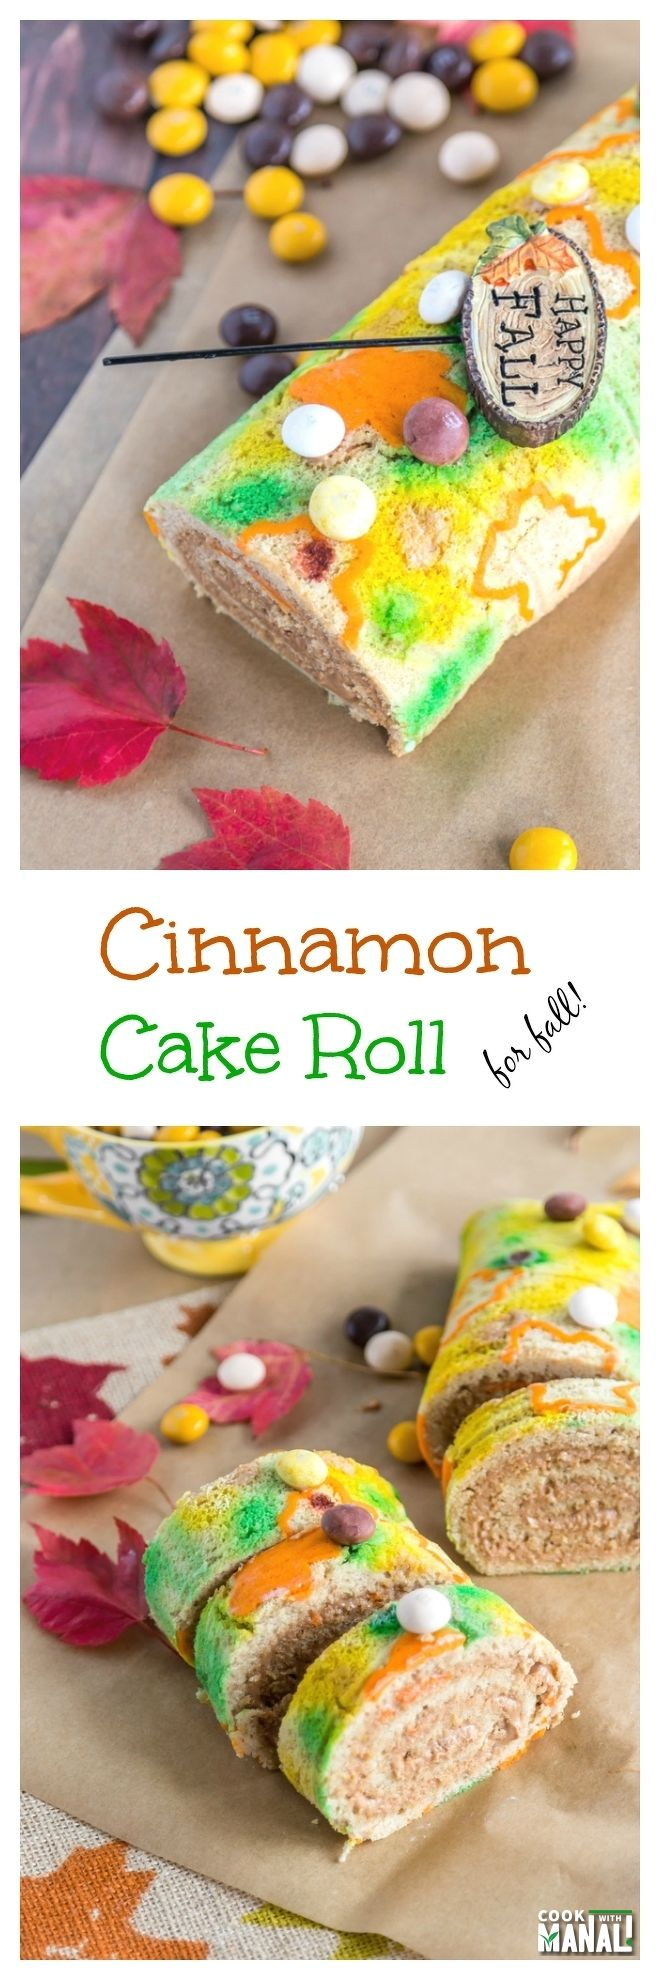 Cinnamon Cake Roll Collage